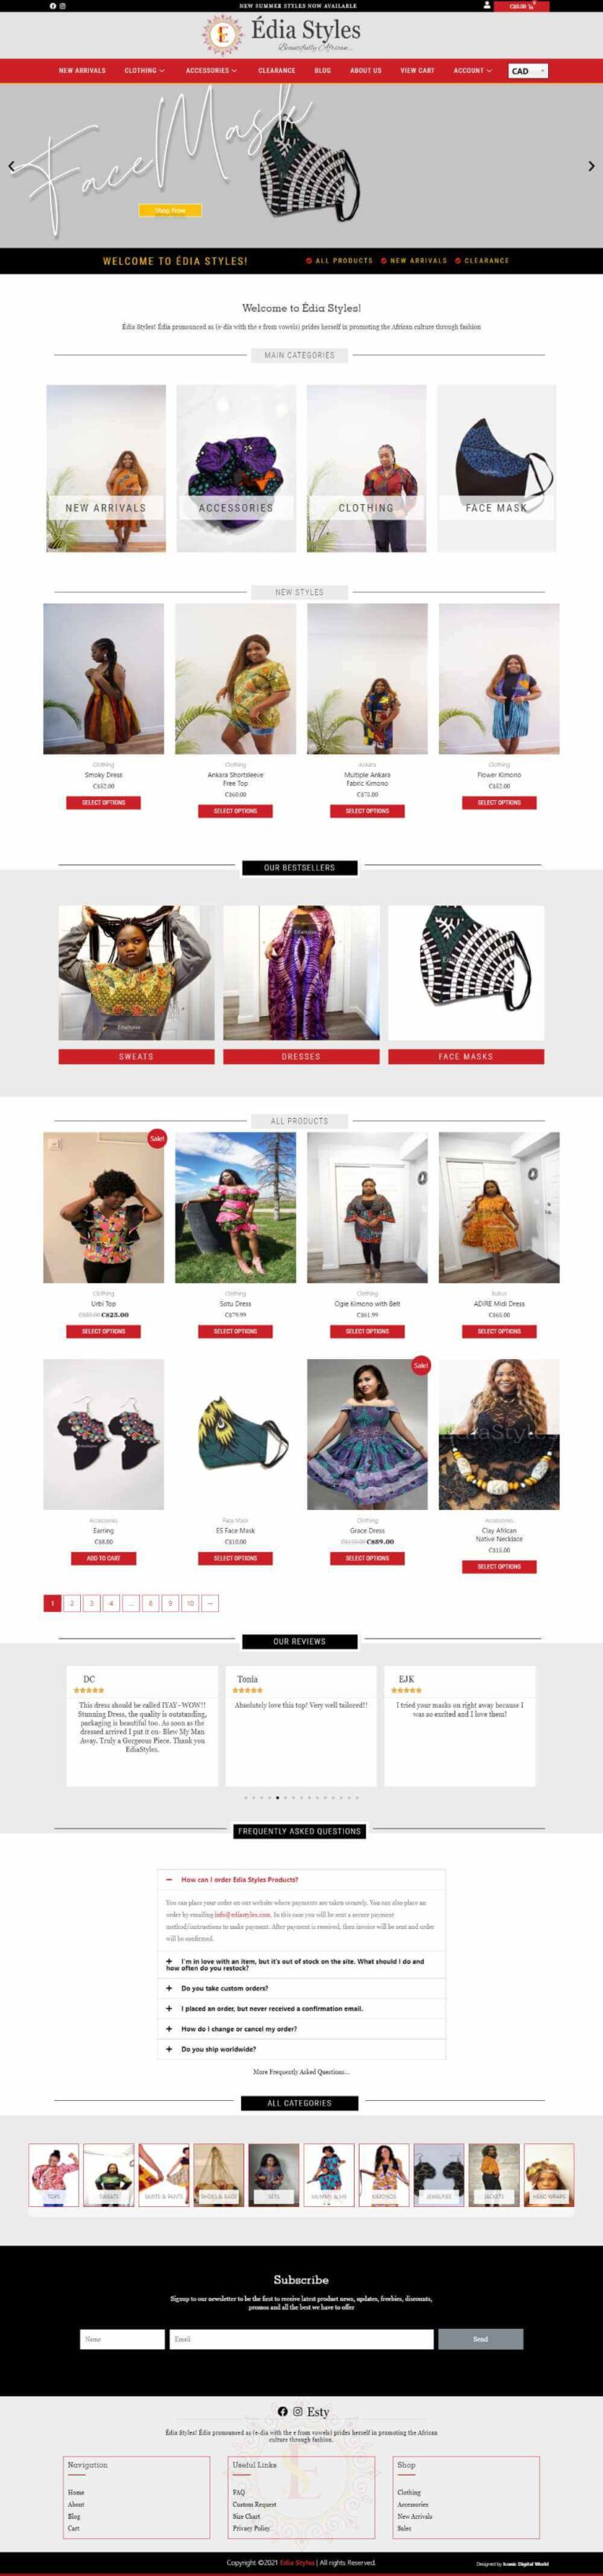 Edia Styles Website Design Home Page